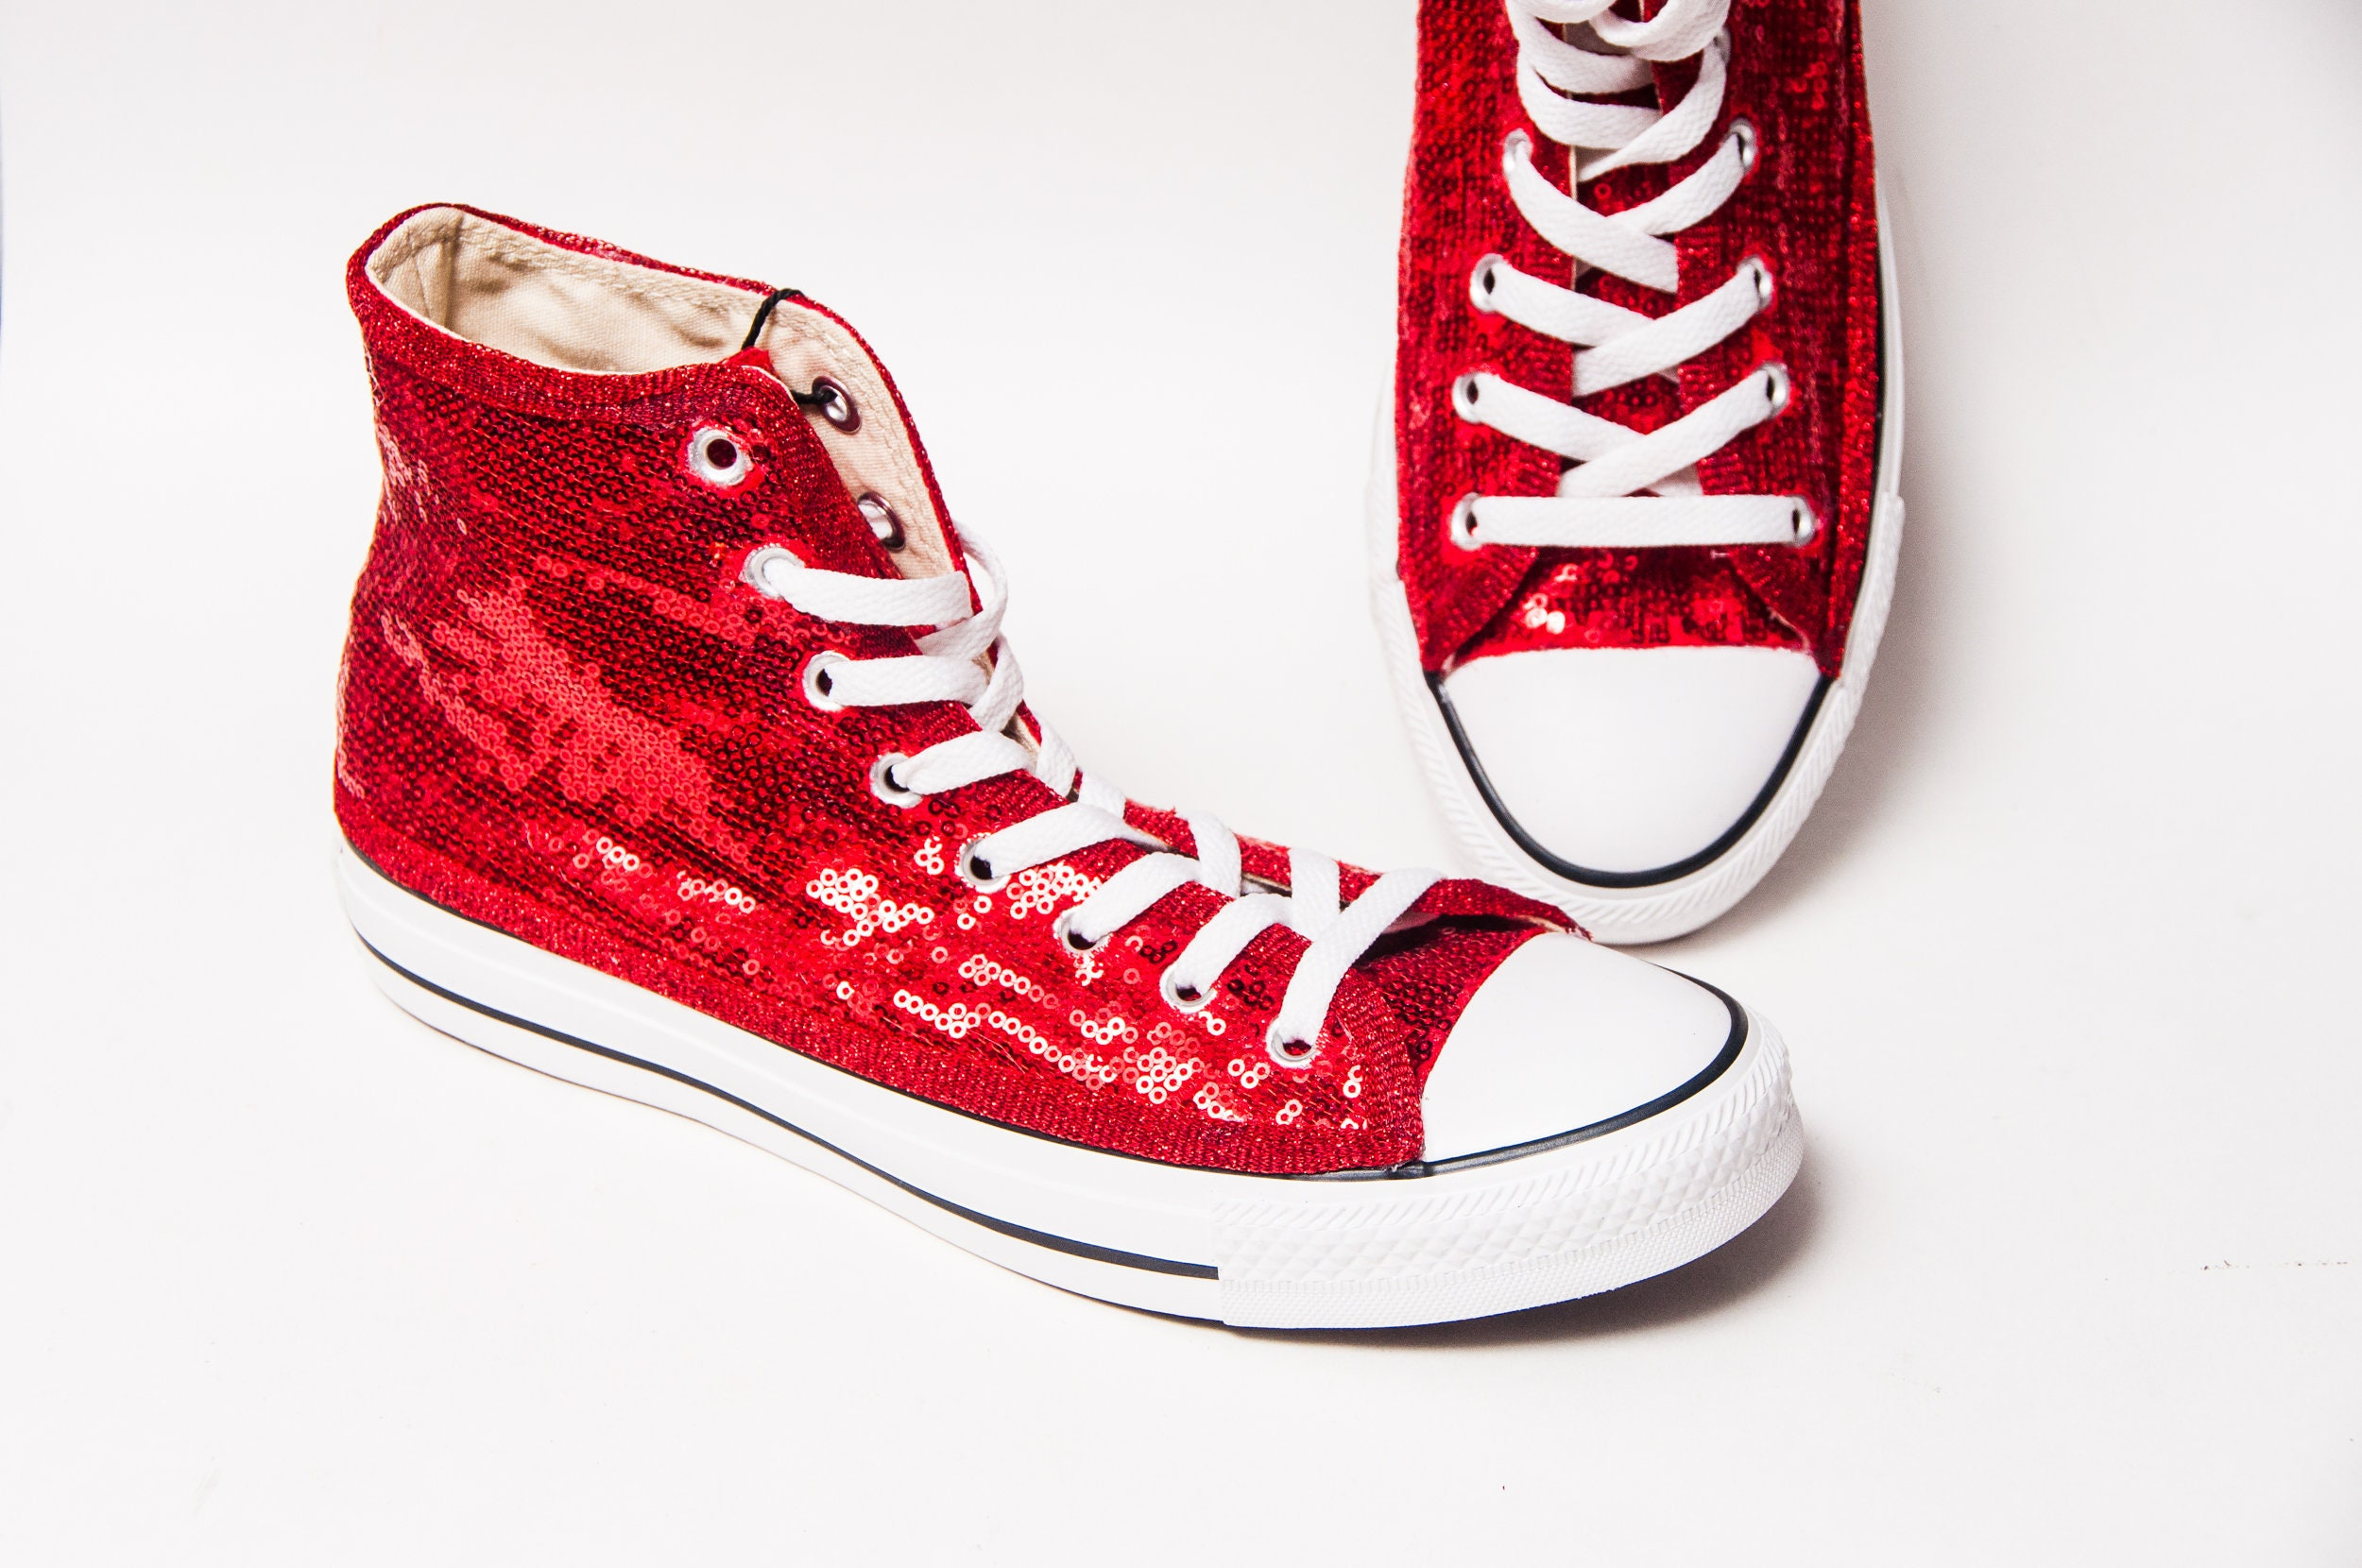 Sequin Hand Sparkled Red Canvas Converse Hi Top Sneakers